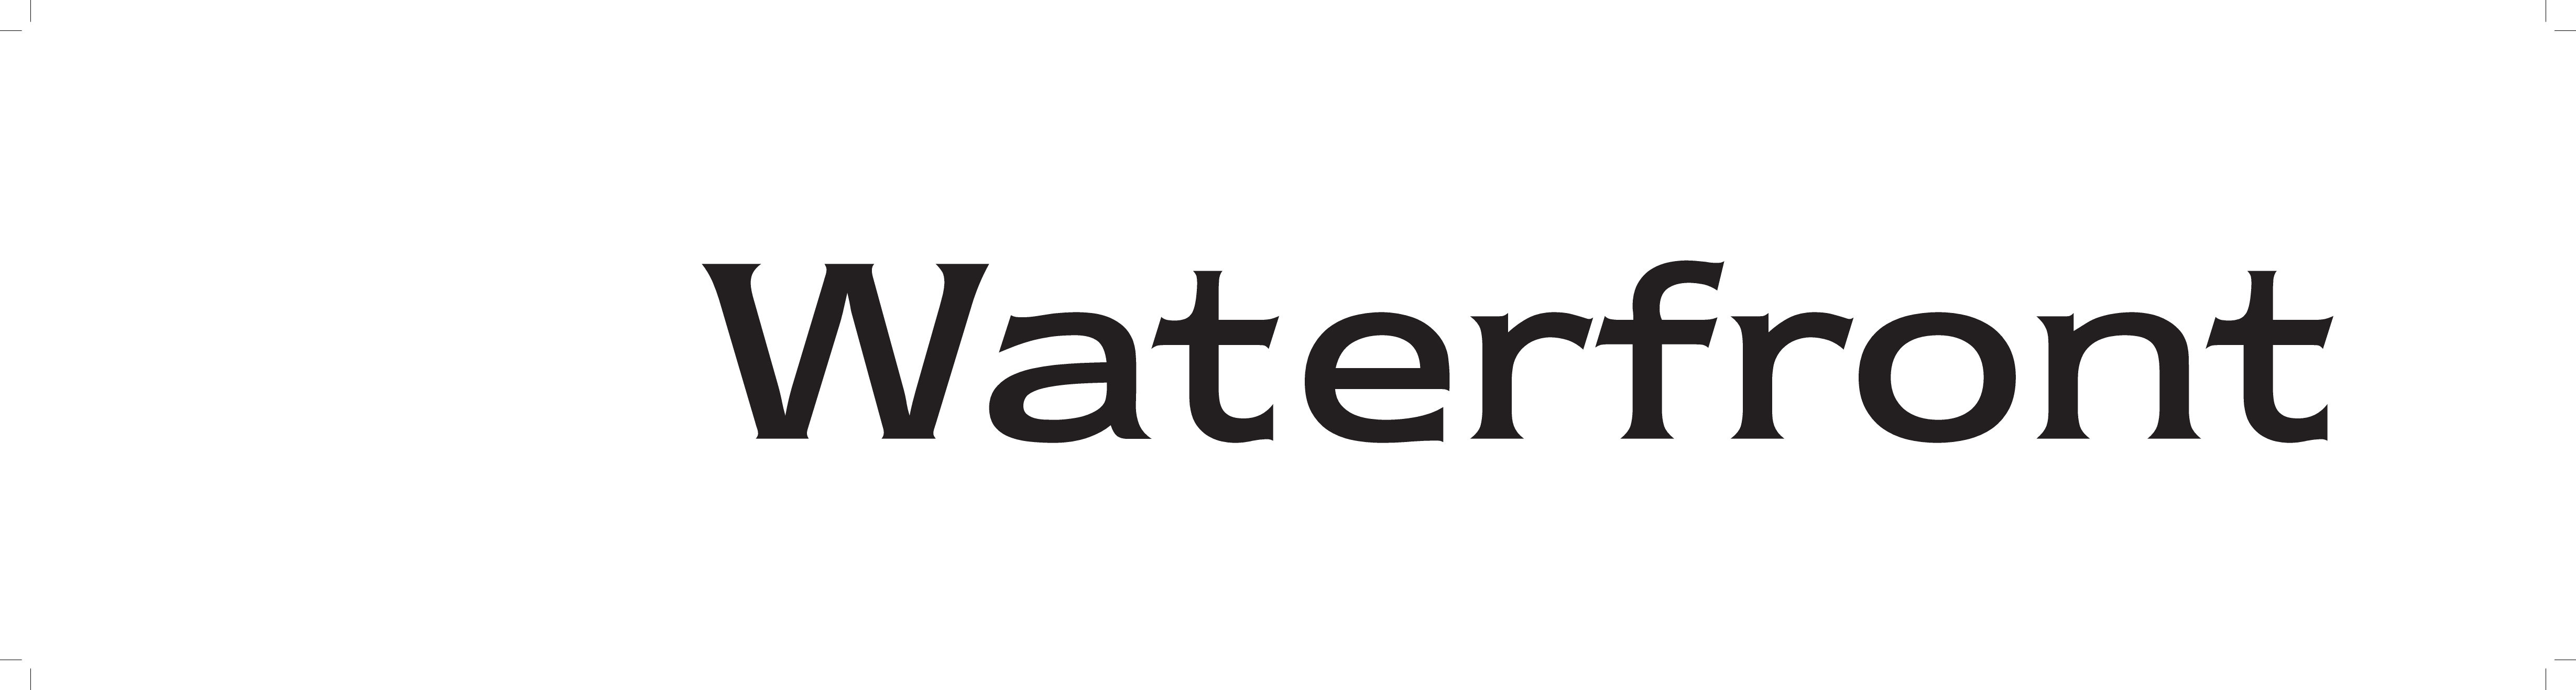 2   Waterfront